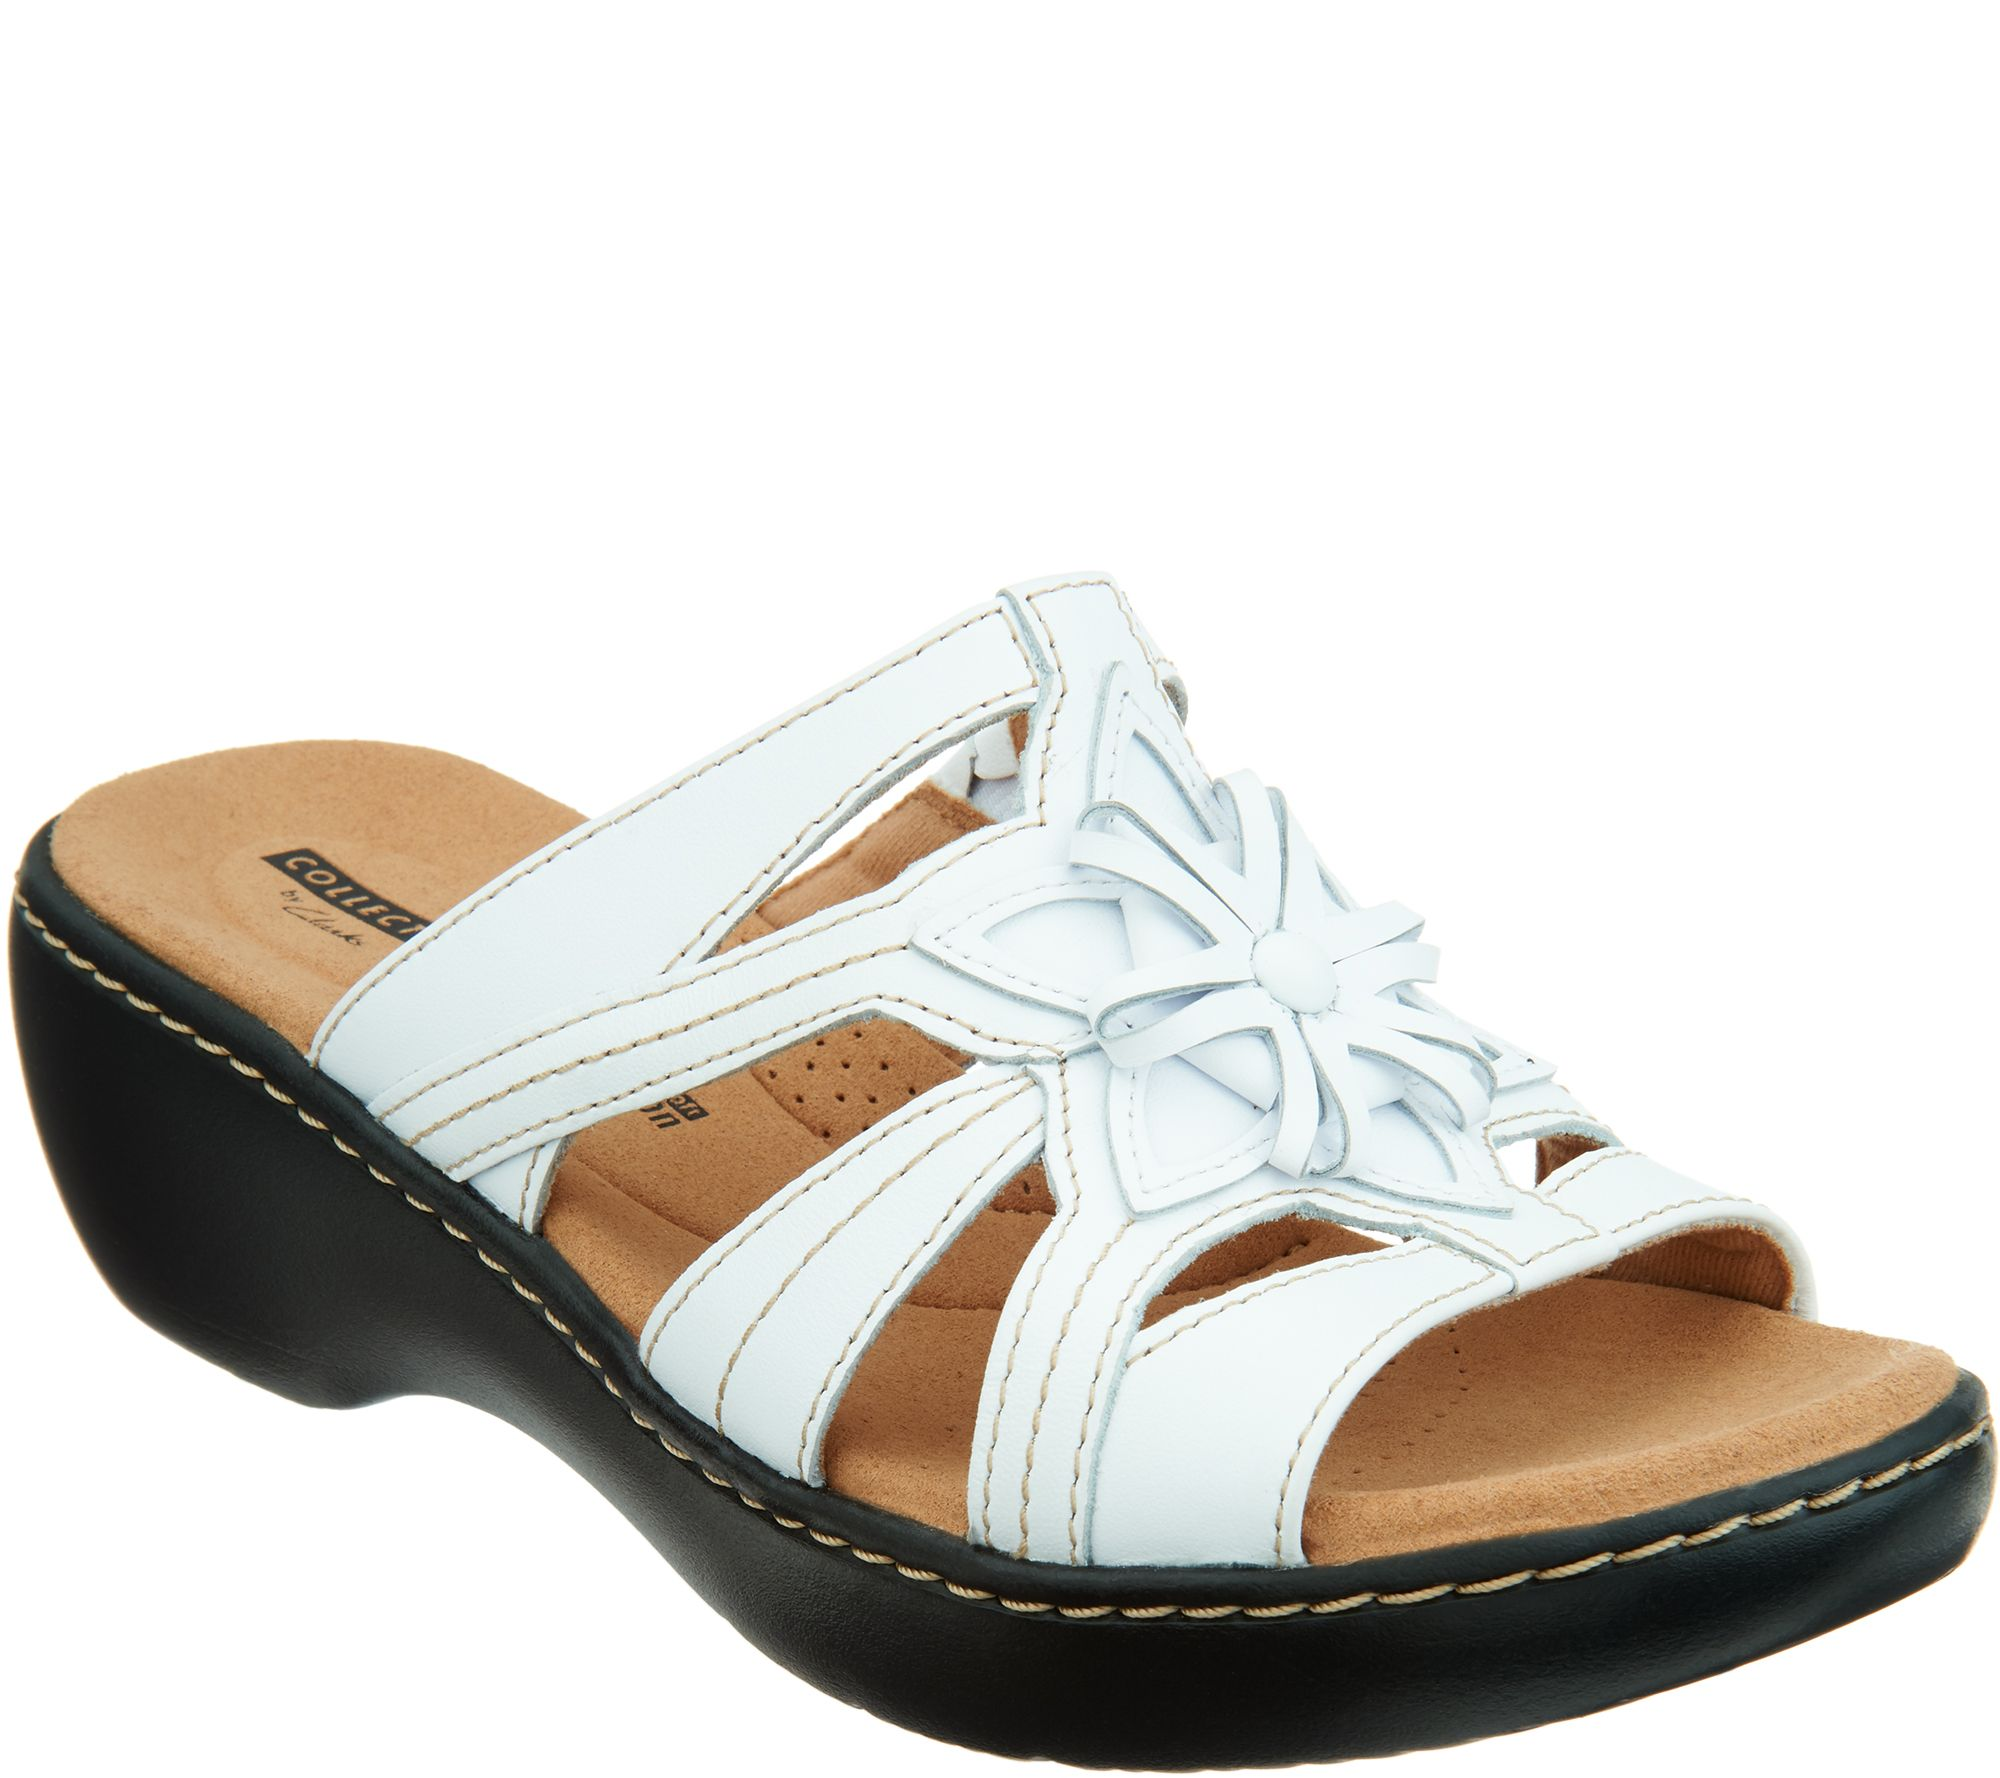 566b9818 Clarks Collection Leather Slides - Delana Venna - Page 1 — QVC.com